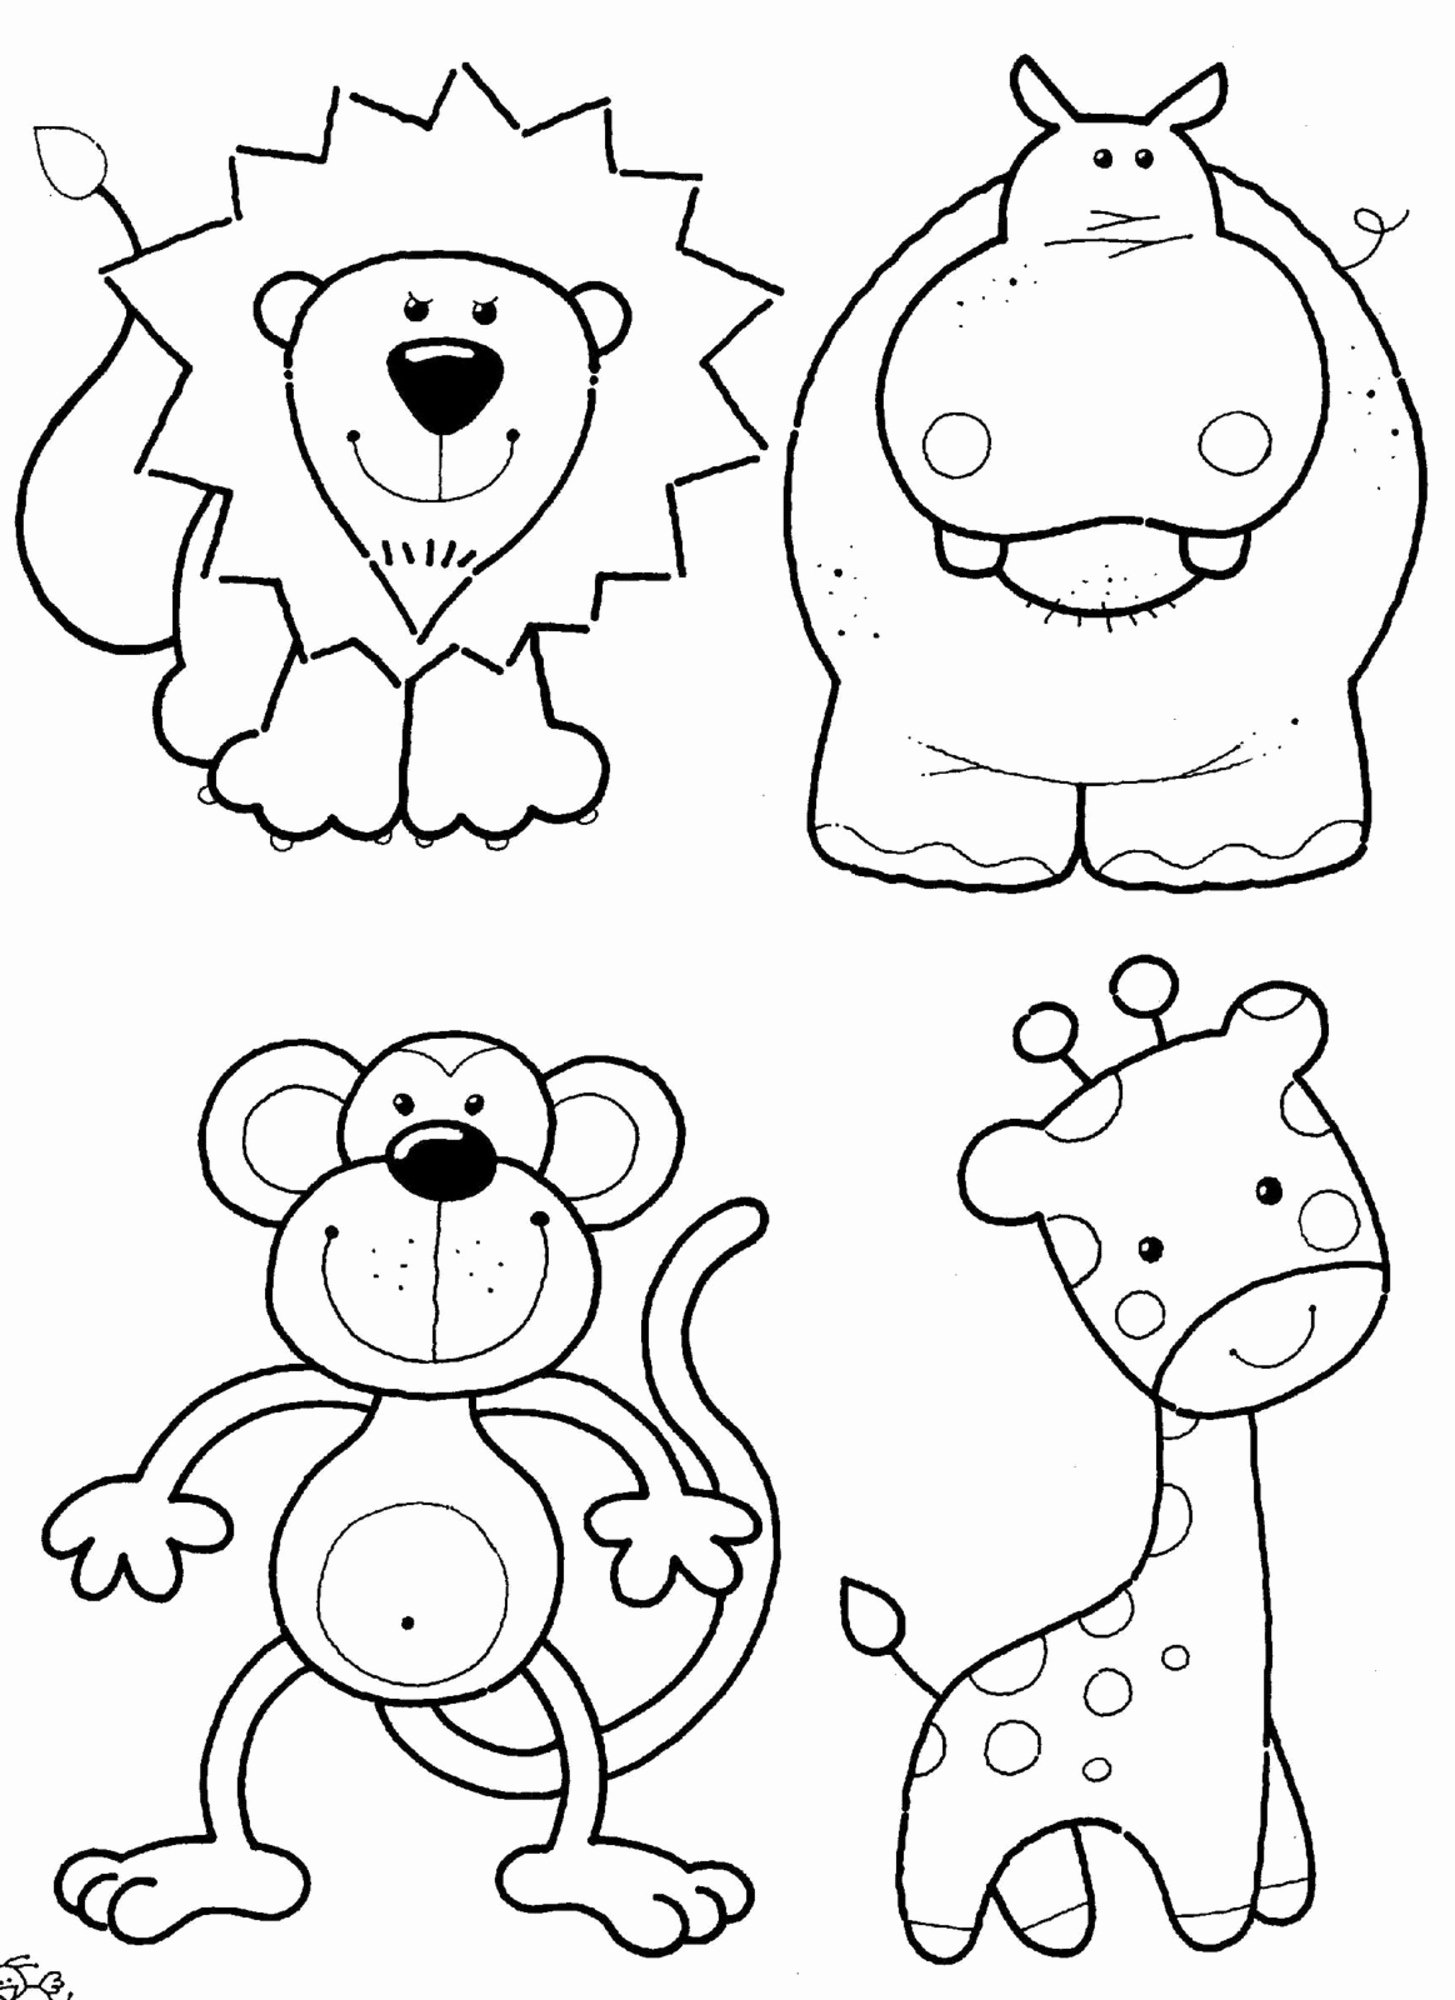 Zoo Animal Math Worksheets for Preschoolers Fresh Coloring Book Cute Animals Zoo Fabulous for themed Math